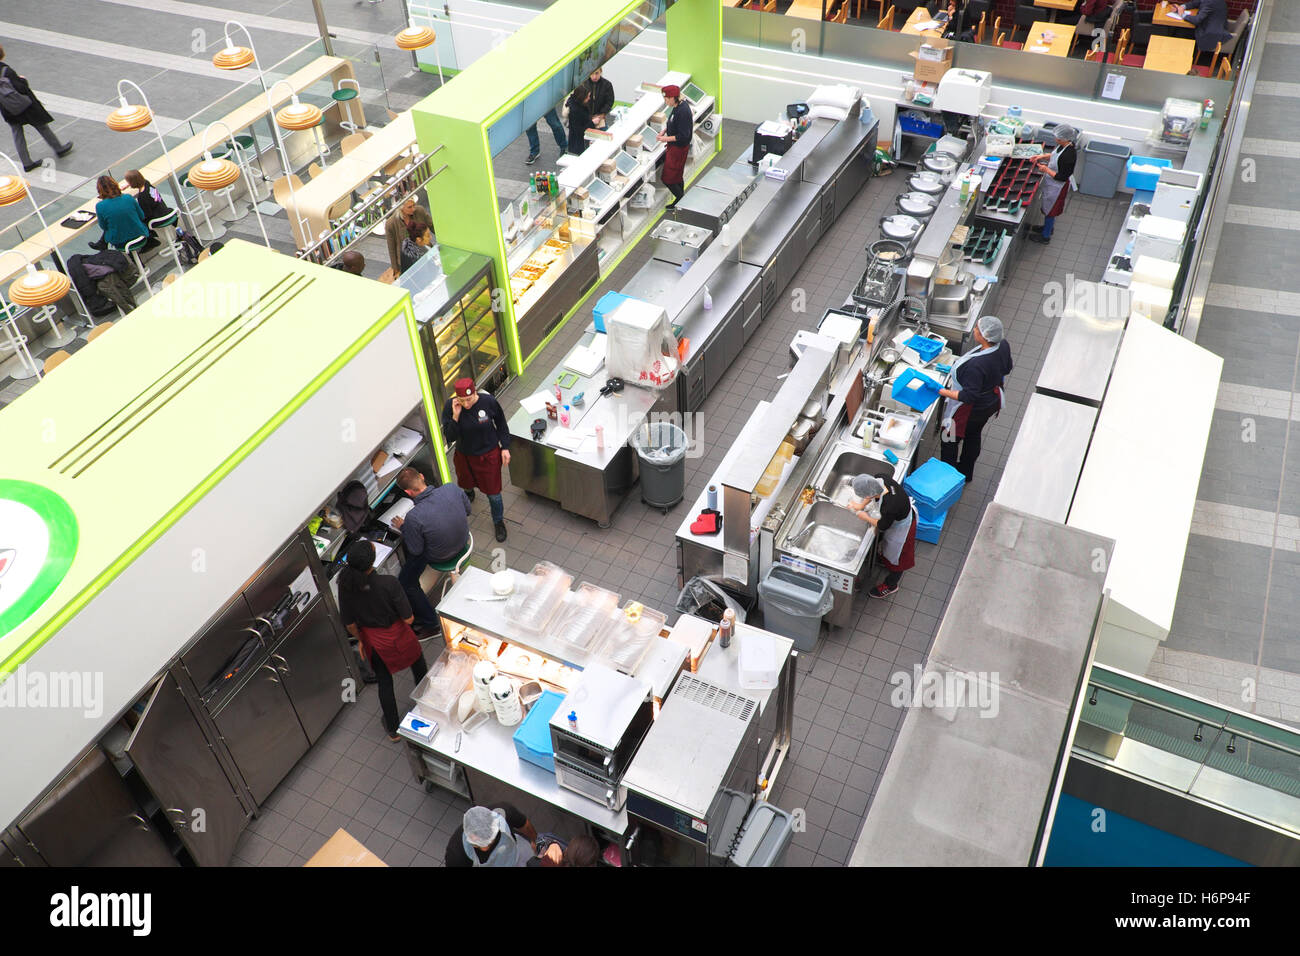 Fast food store view from above showing kitchen and food preparation area - Stock Image